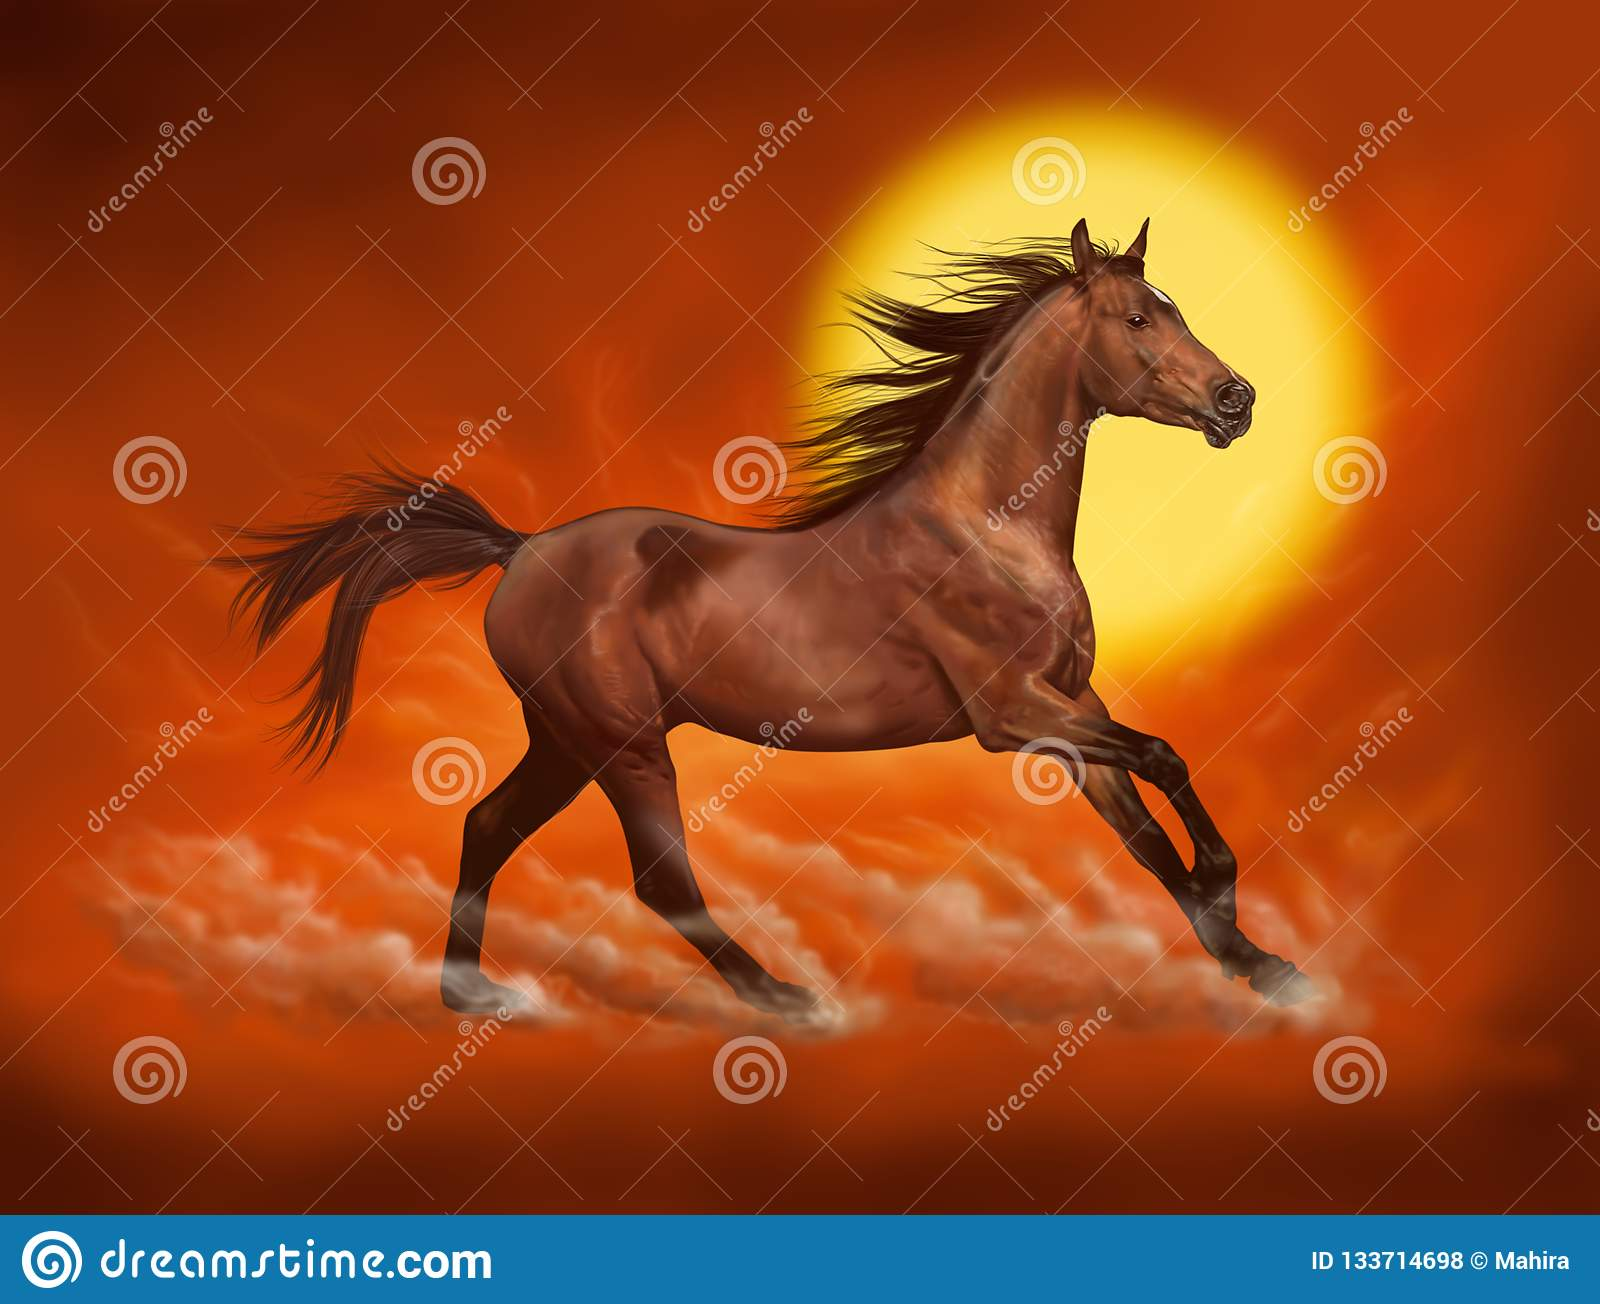 Red Running Horse Illustration Stock Illustrations 379 Red Running Horse Illustration Stock Illustrations Vectors Clipart Dreamstime